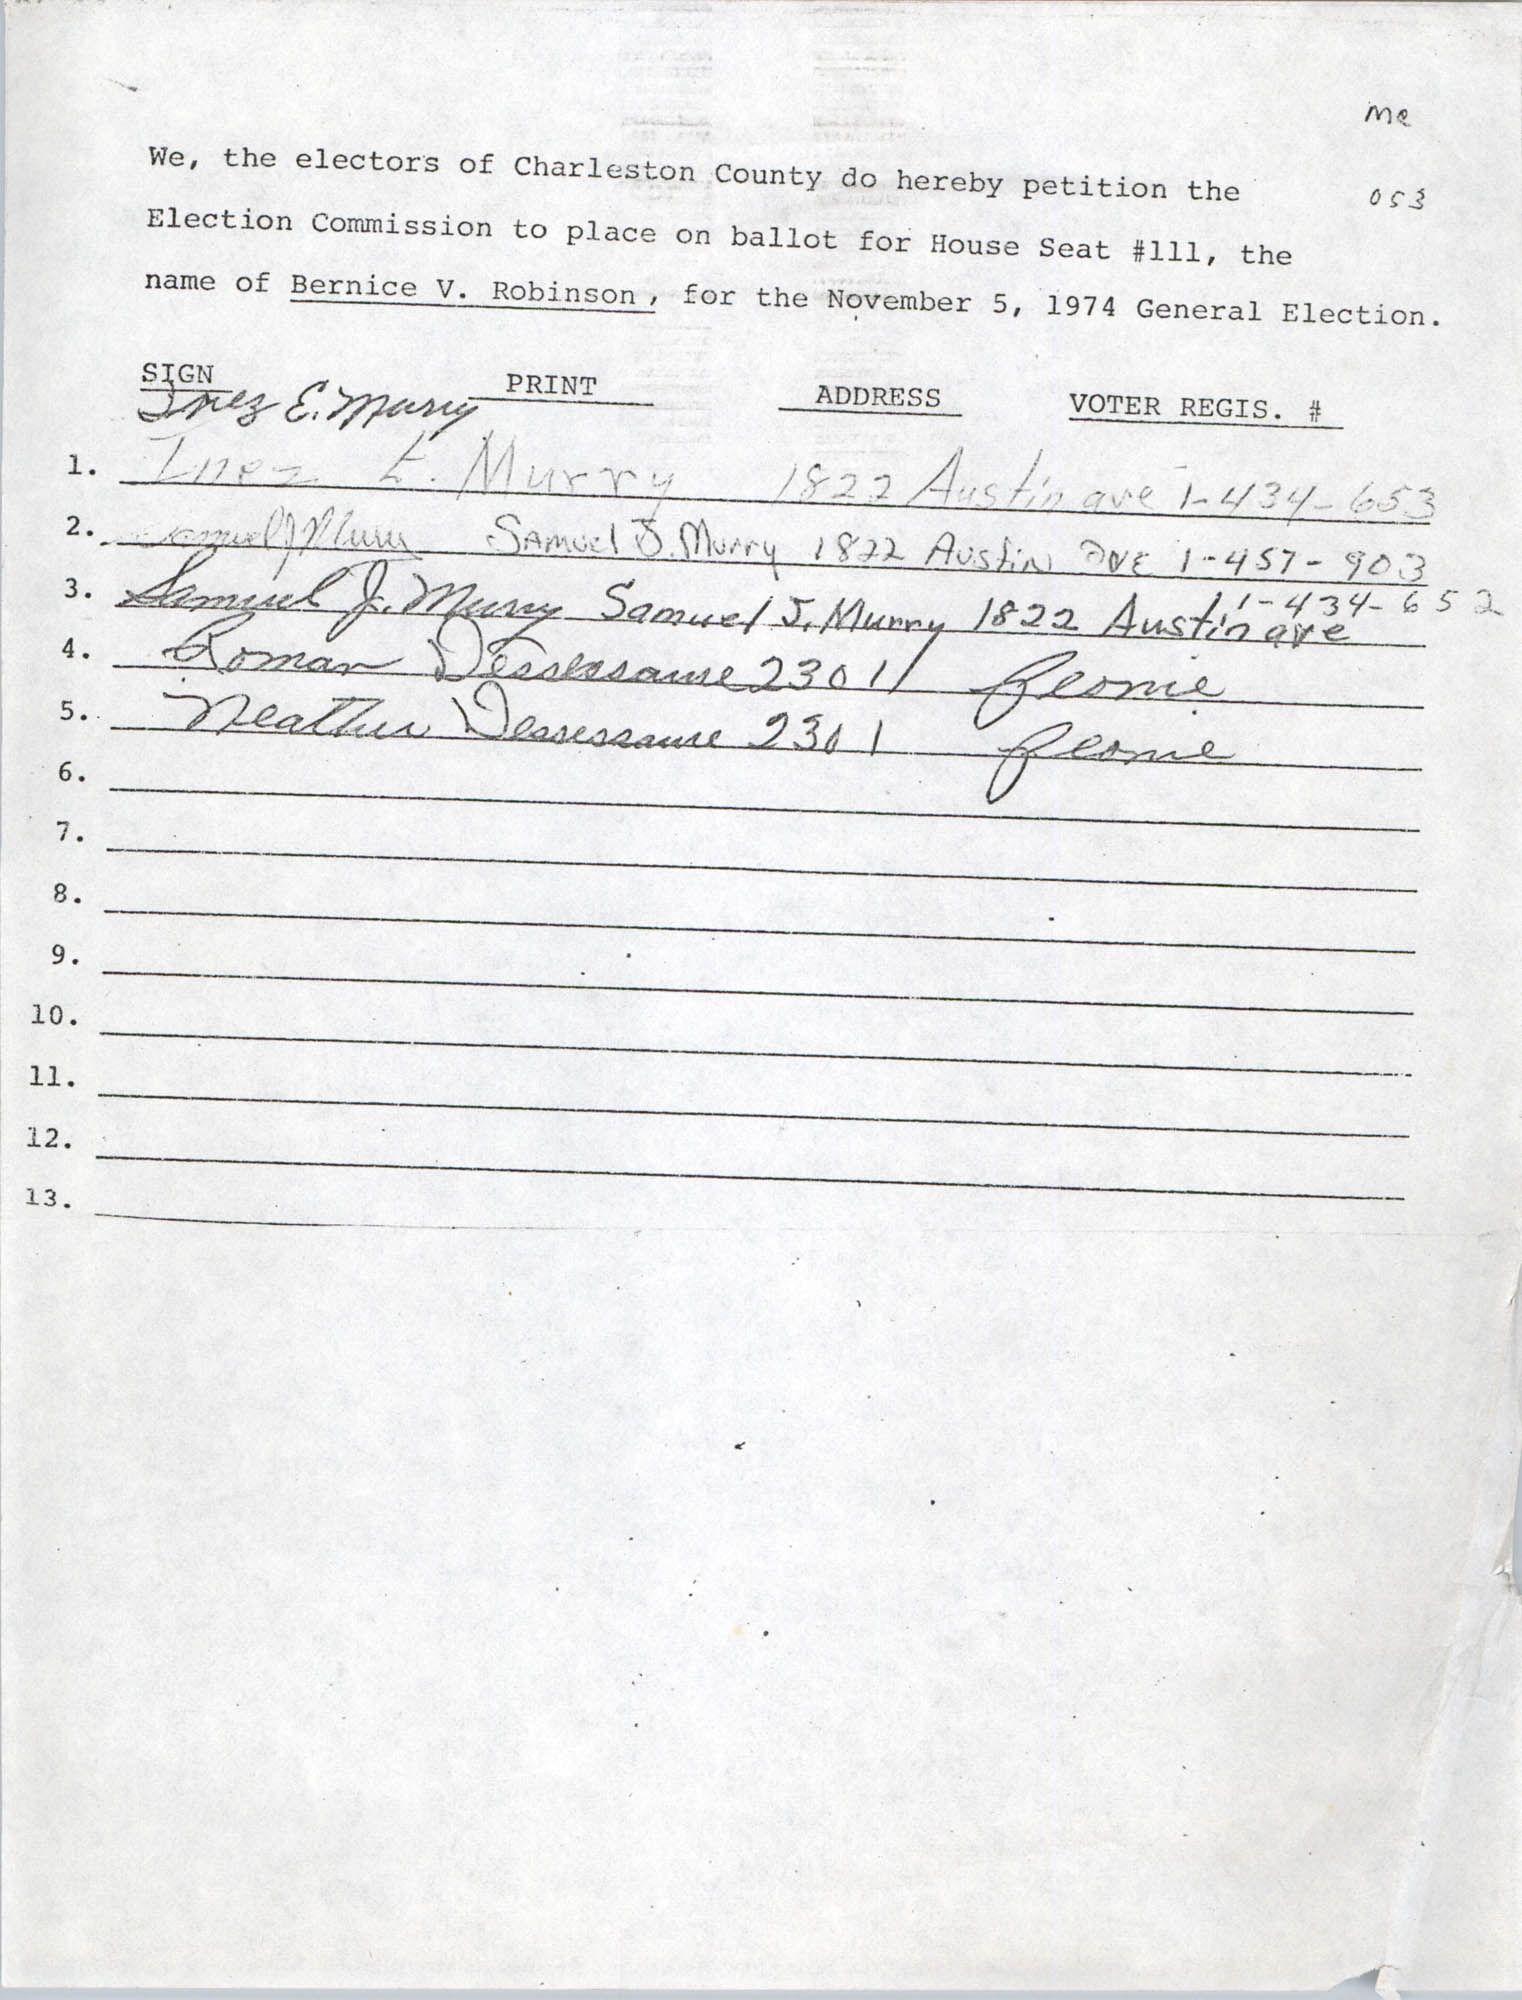 Bernice Robinson Petition for South Carolina House of Representatives, Page 10 (053)